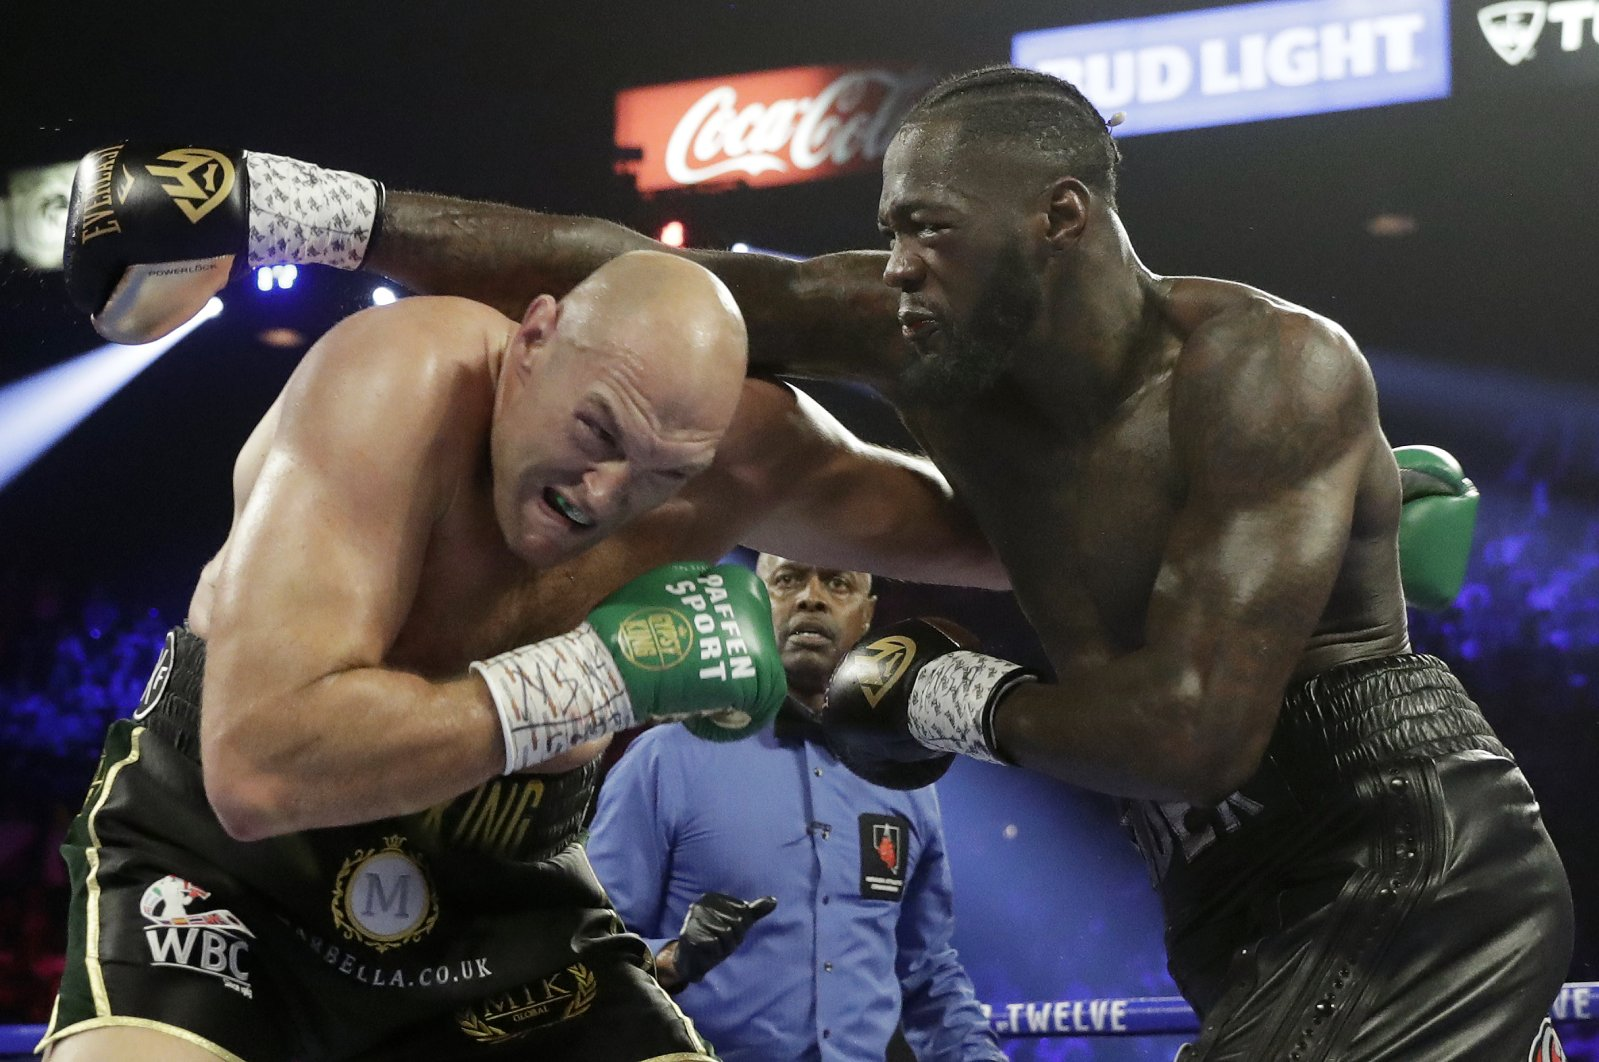 Tyson Fury (L) fights Deontay Wilder during a WBC boxing match in Las Vegas, Feb. 22, 2020. (AP Photo)